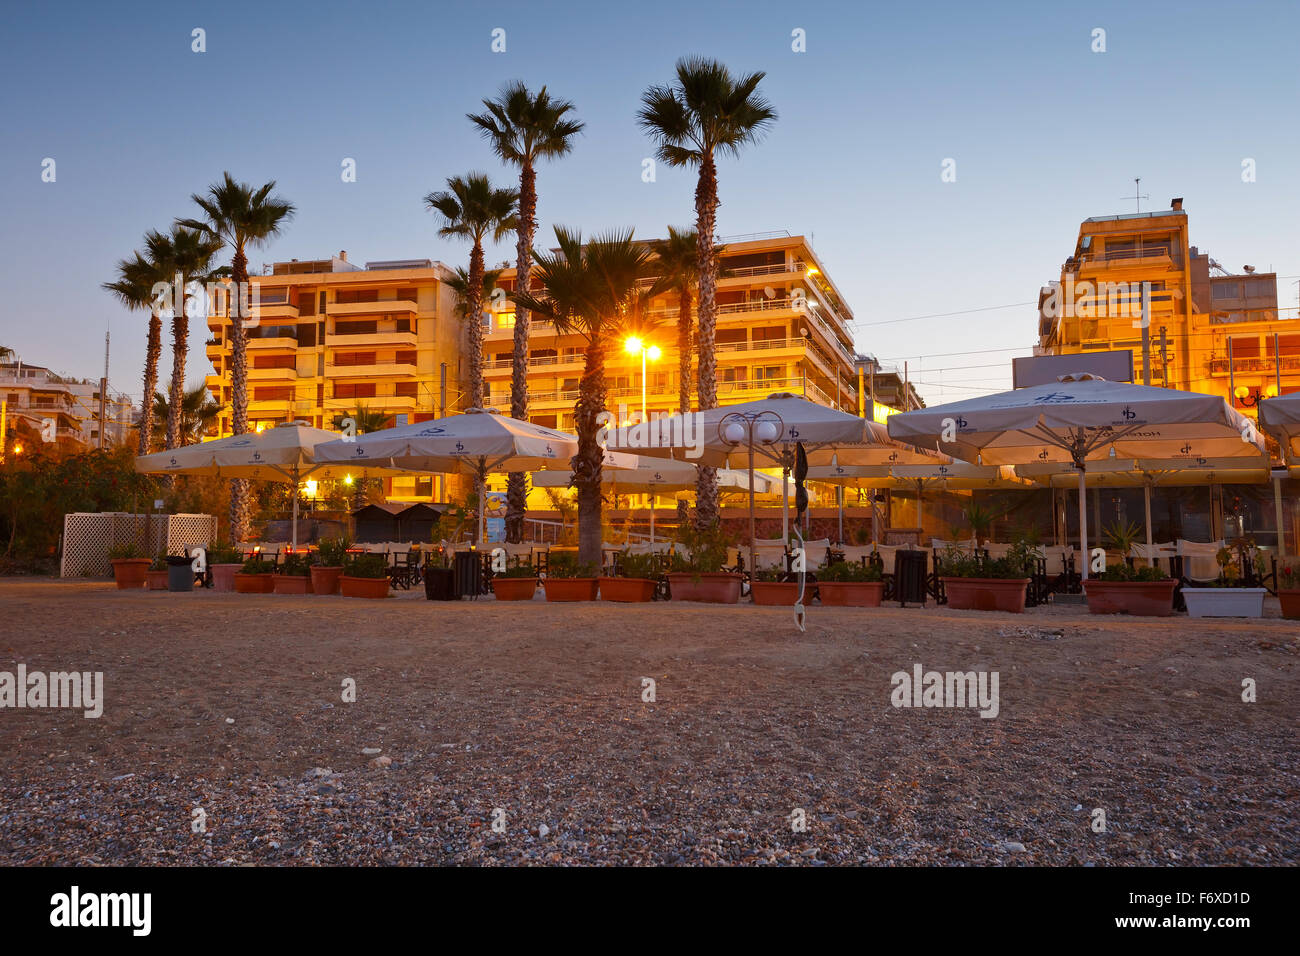 Palm Trees And Hotels Stock Photos Amp Palm Trees And Hotels